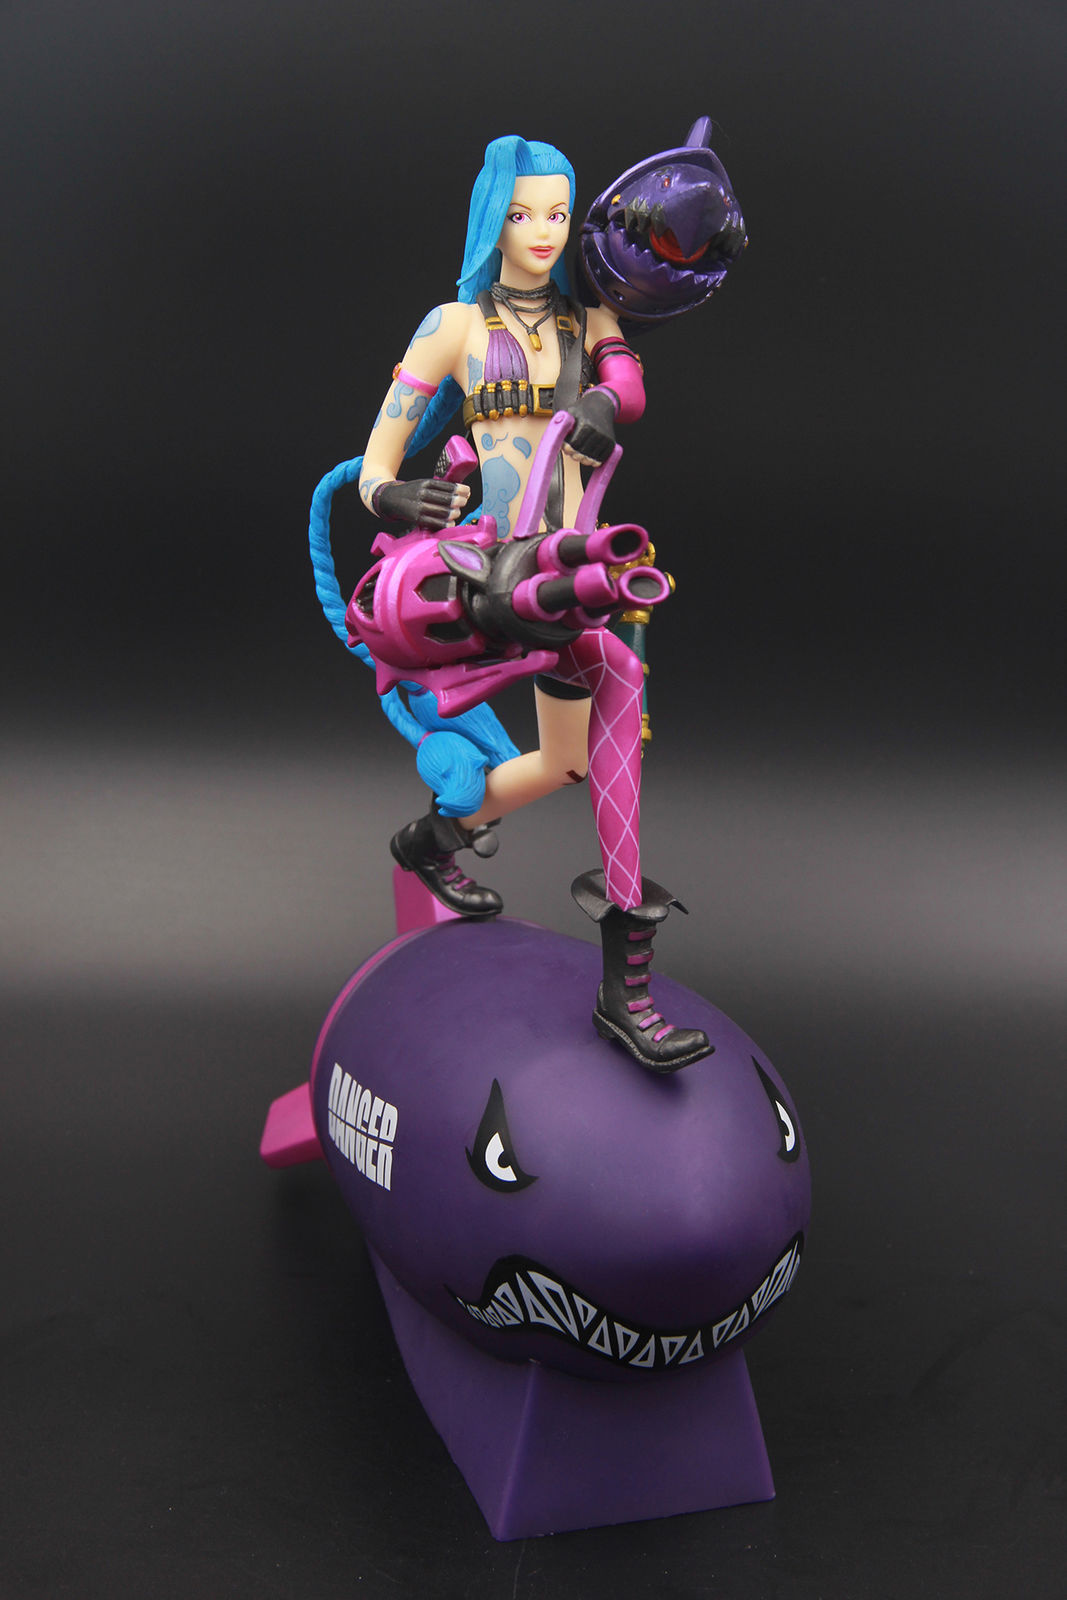 LOL League Marksman Loose Cannon Jinx Rocket Figure Statue Model New Anime Figure Collectible Model Toy Of Legends